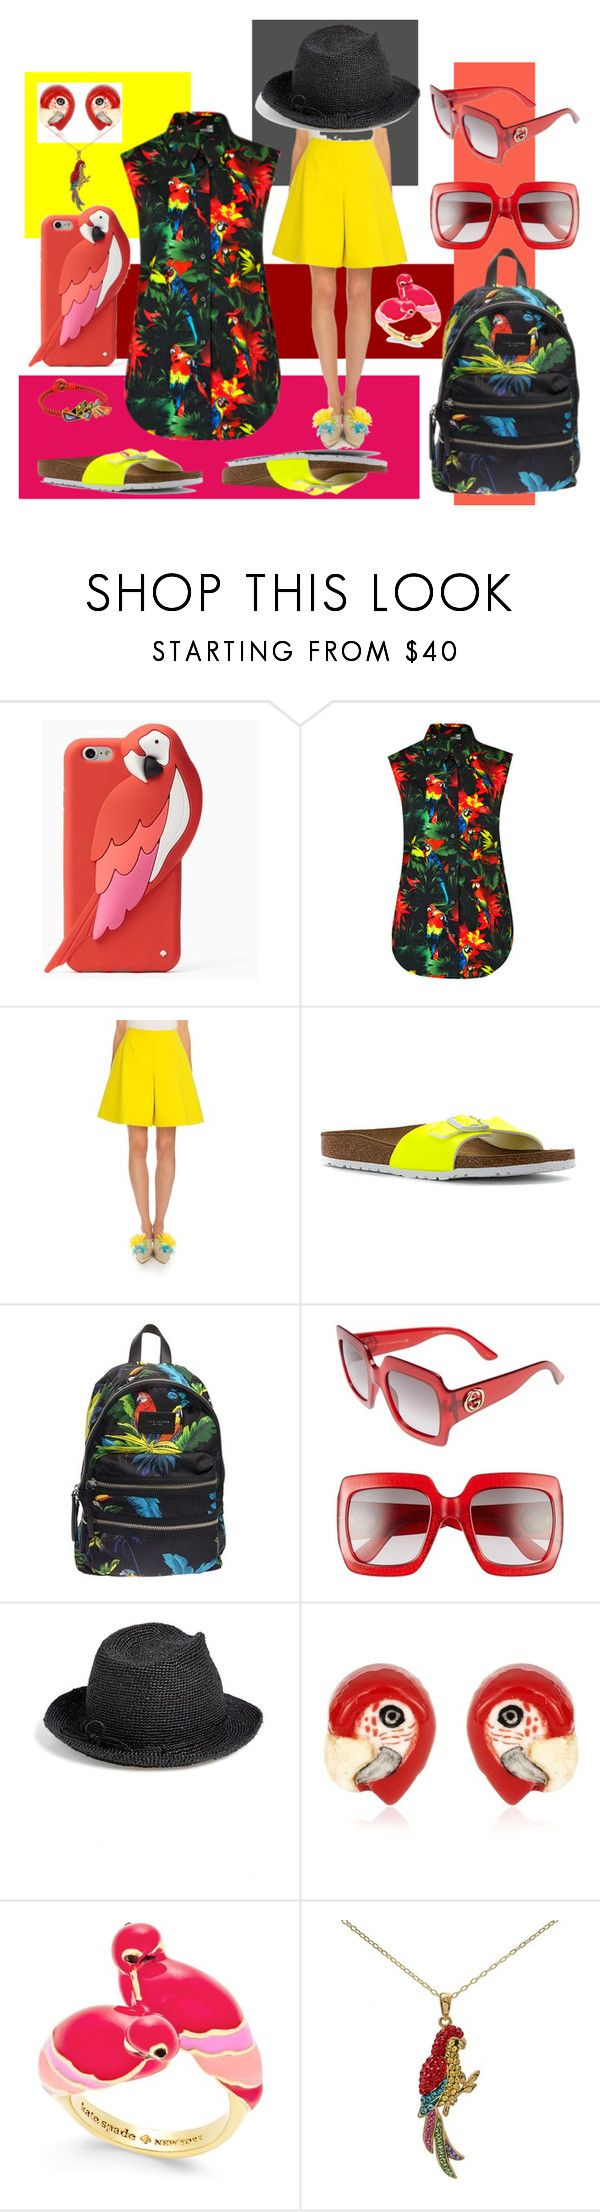 """""""Untitled #1236"""" by moestesoh ❤ liked on Polyvore featuring Kate Spade, Love Moschino, Delpozo, Birkenstock, Marc Jacobs, Gucci, Helen Kaminski, Nach and Tory Burch"""